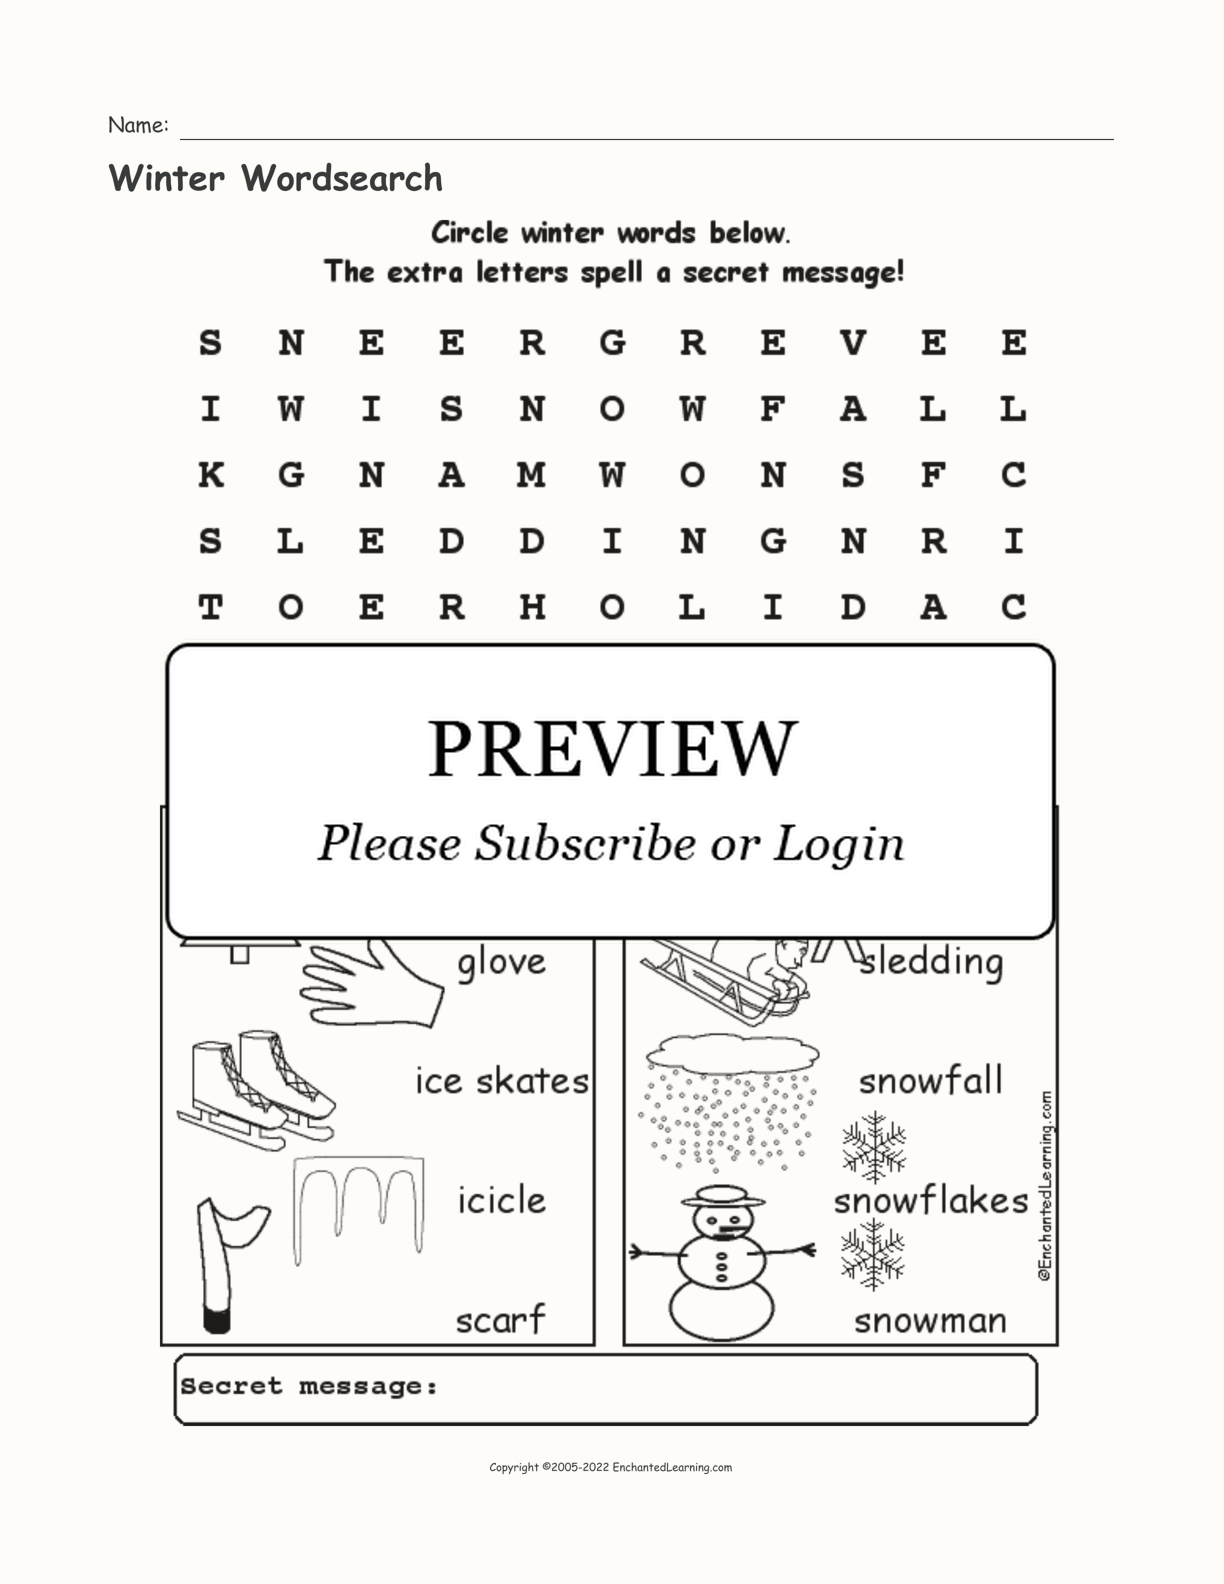 Winter Wordsearch interactive worksheet page 1